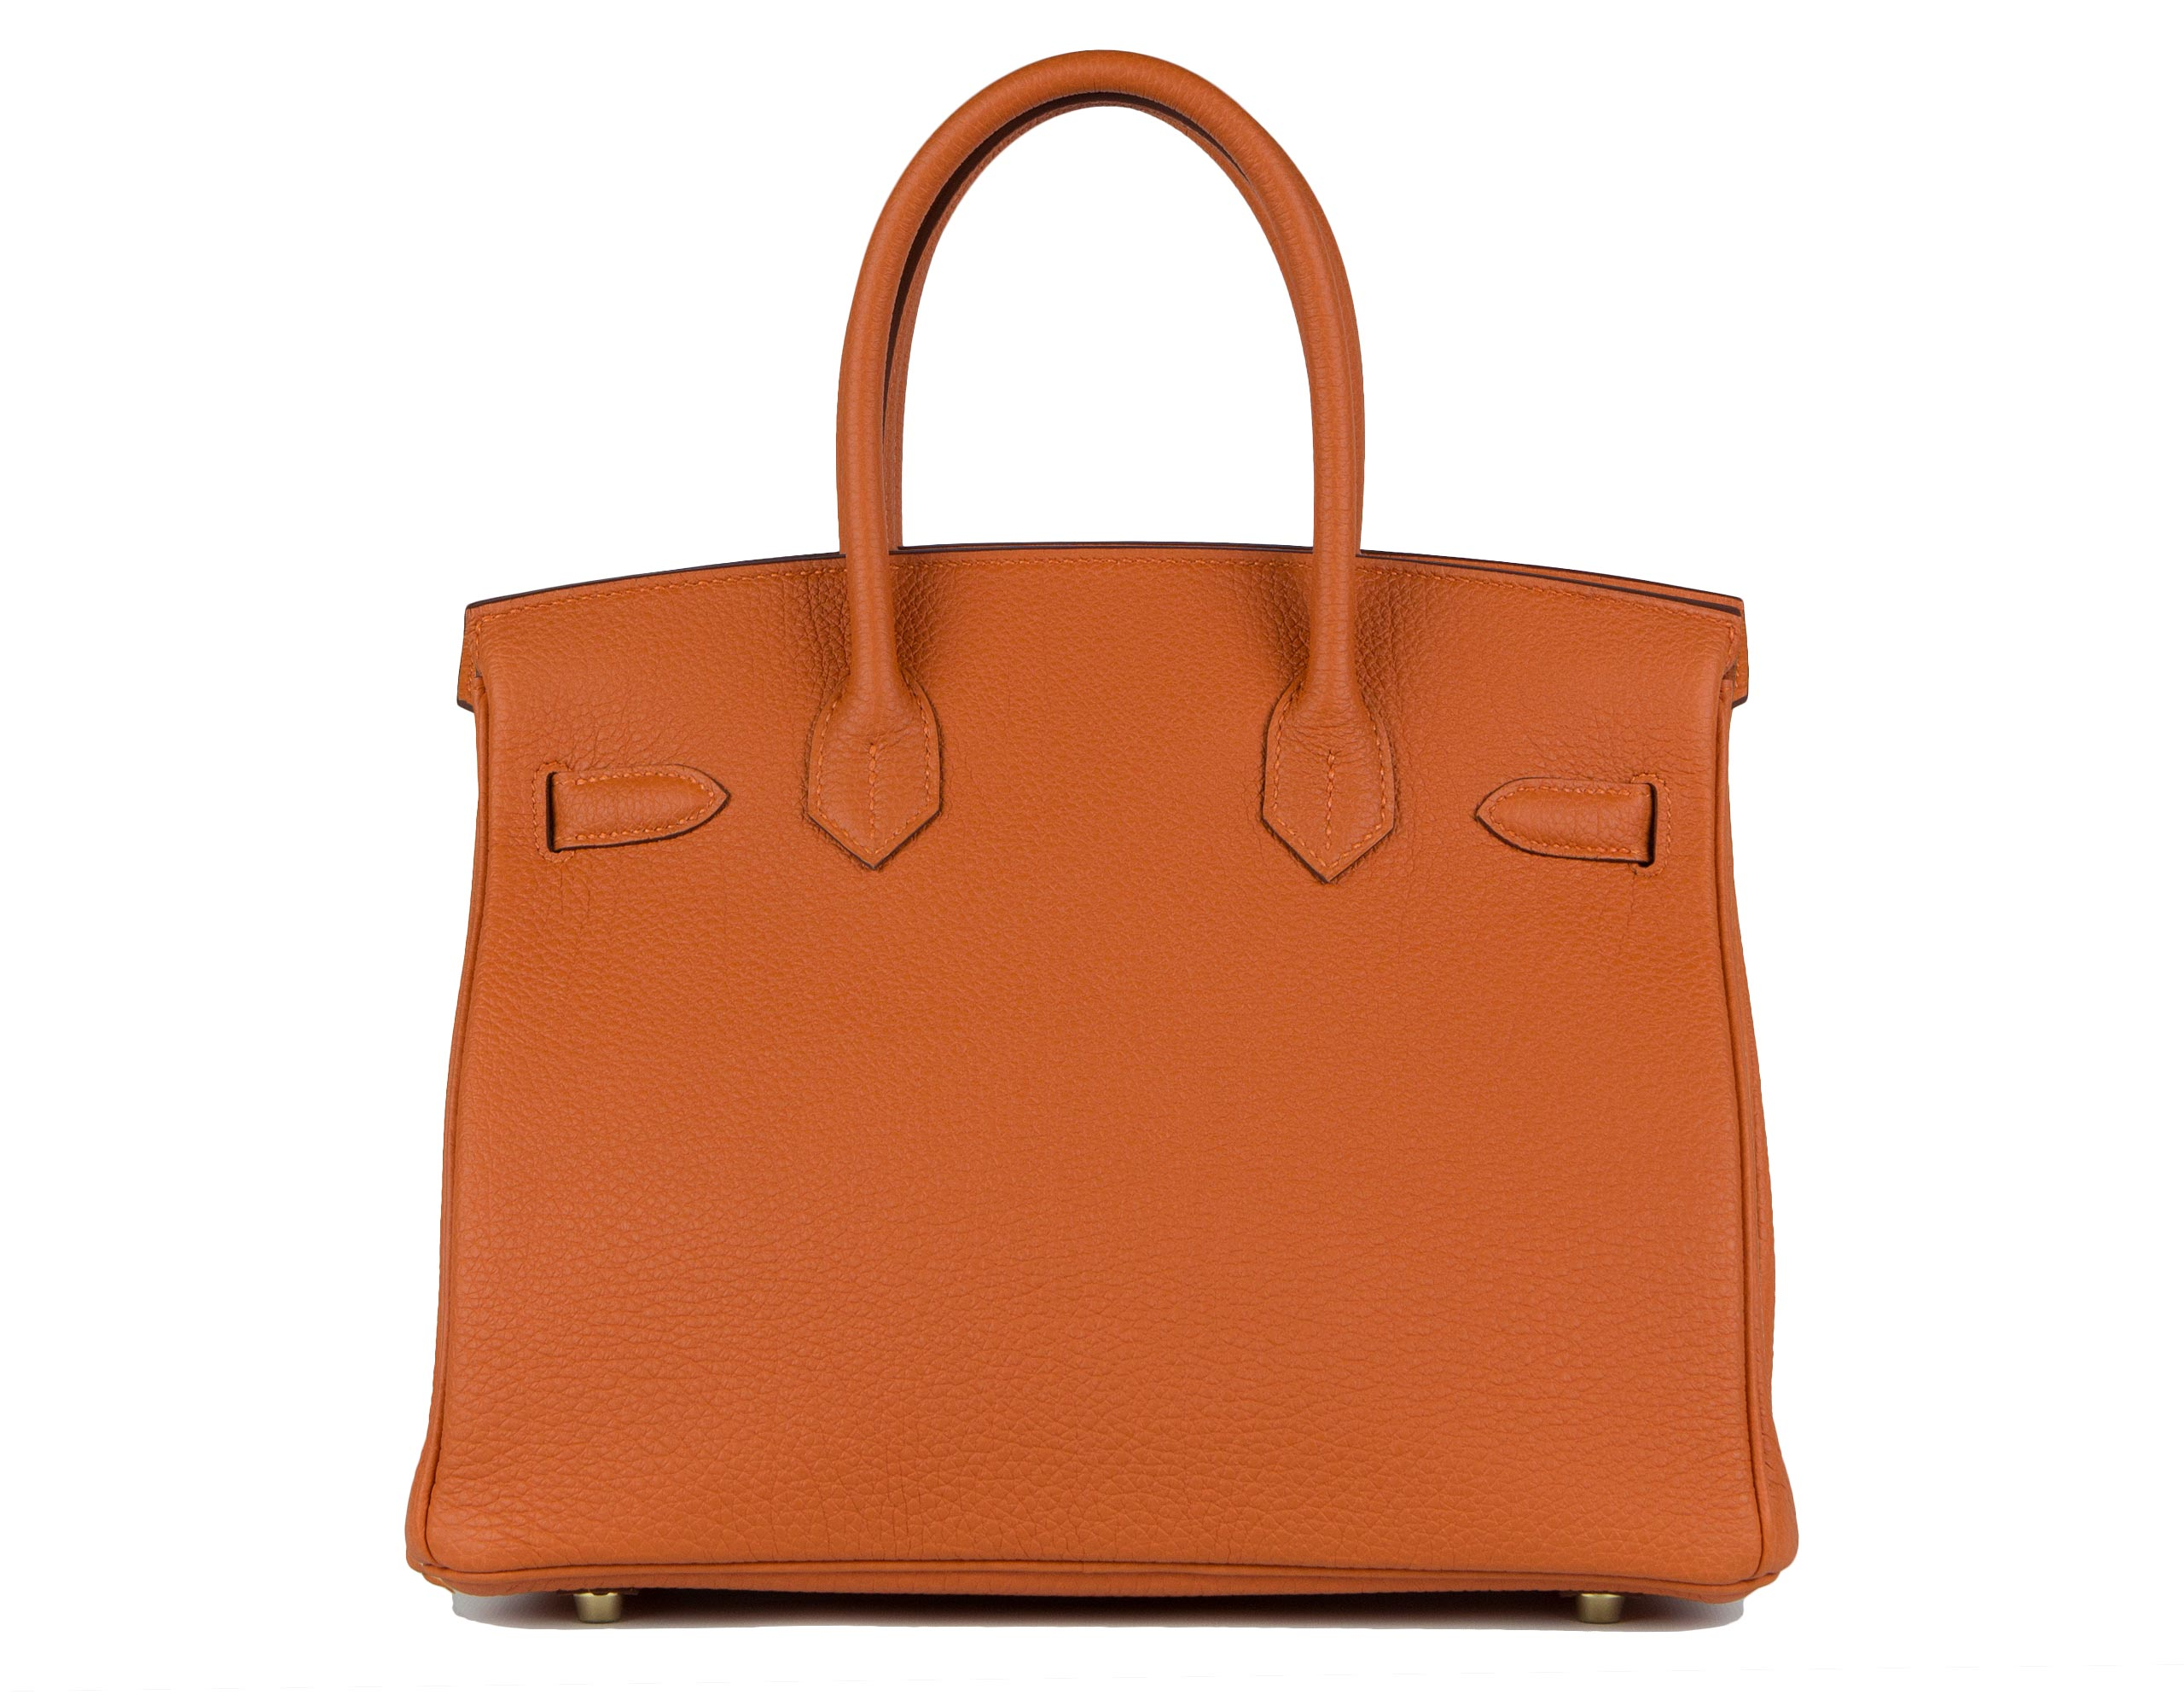 Hermes Bag Birkin Orange Togo 30cm B125 Back